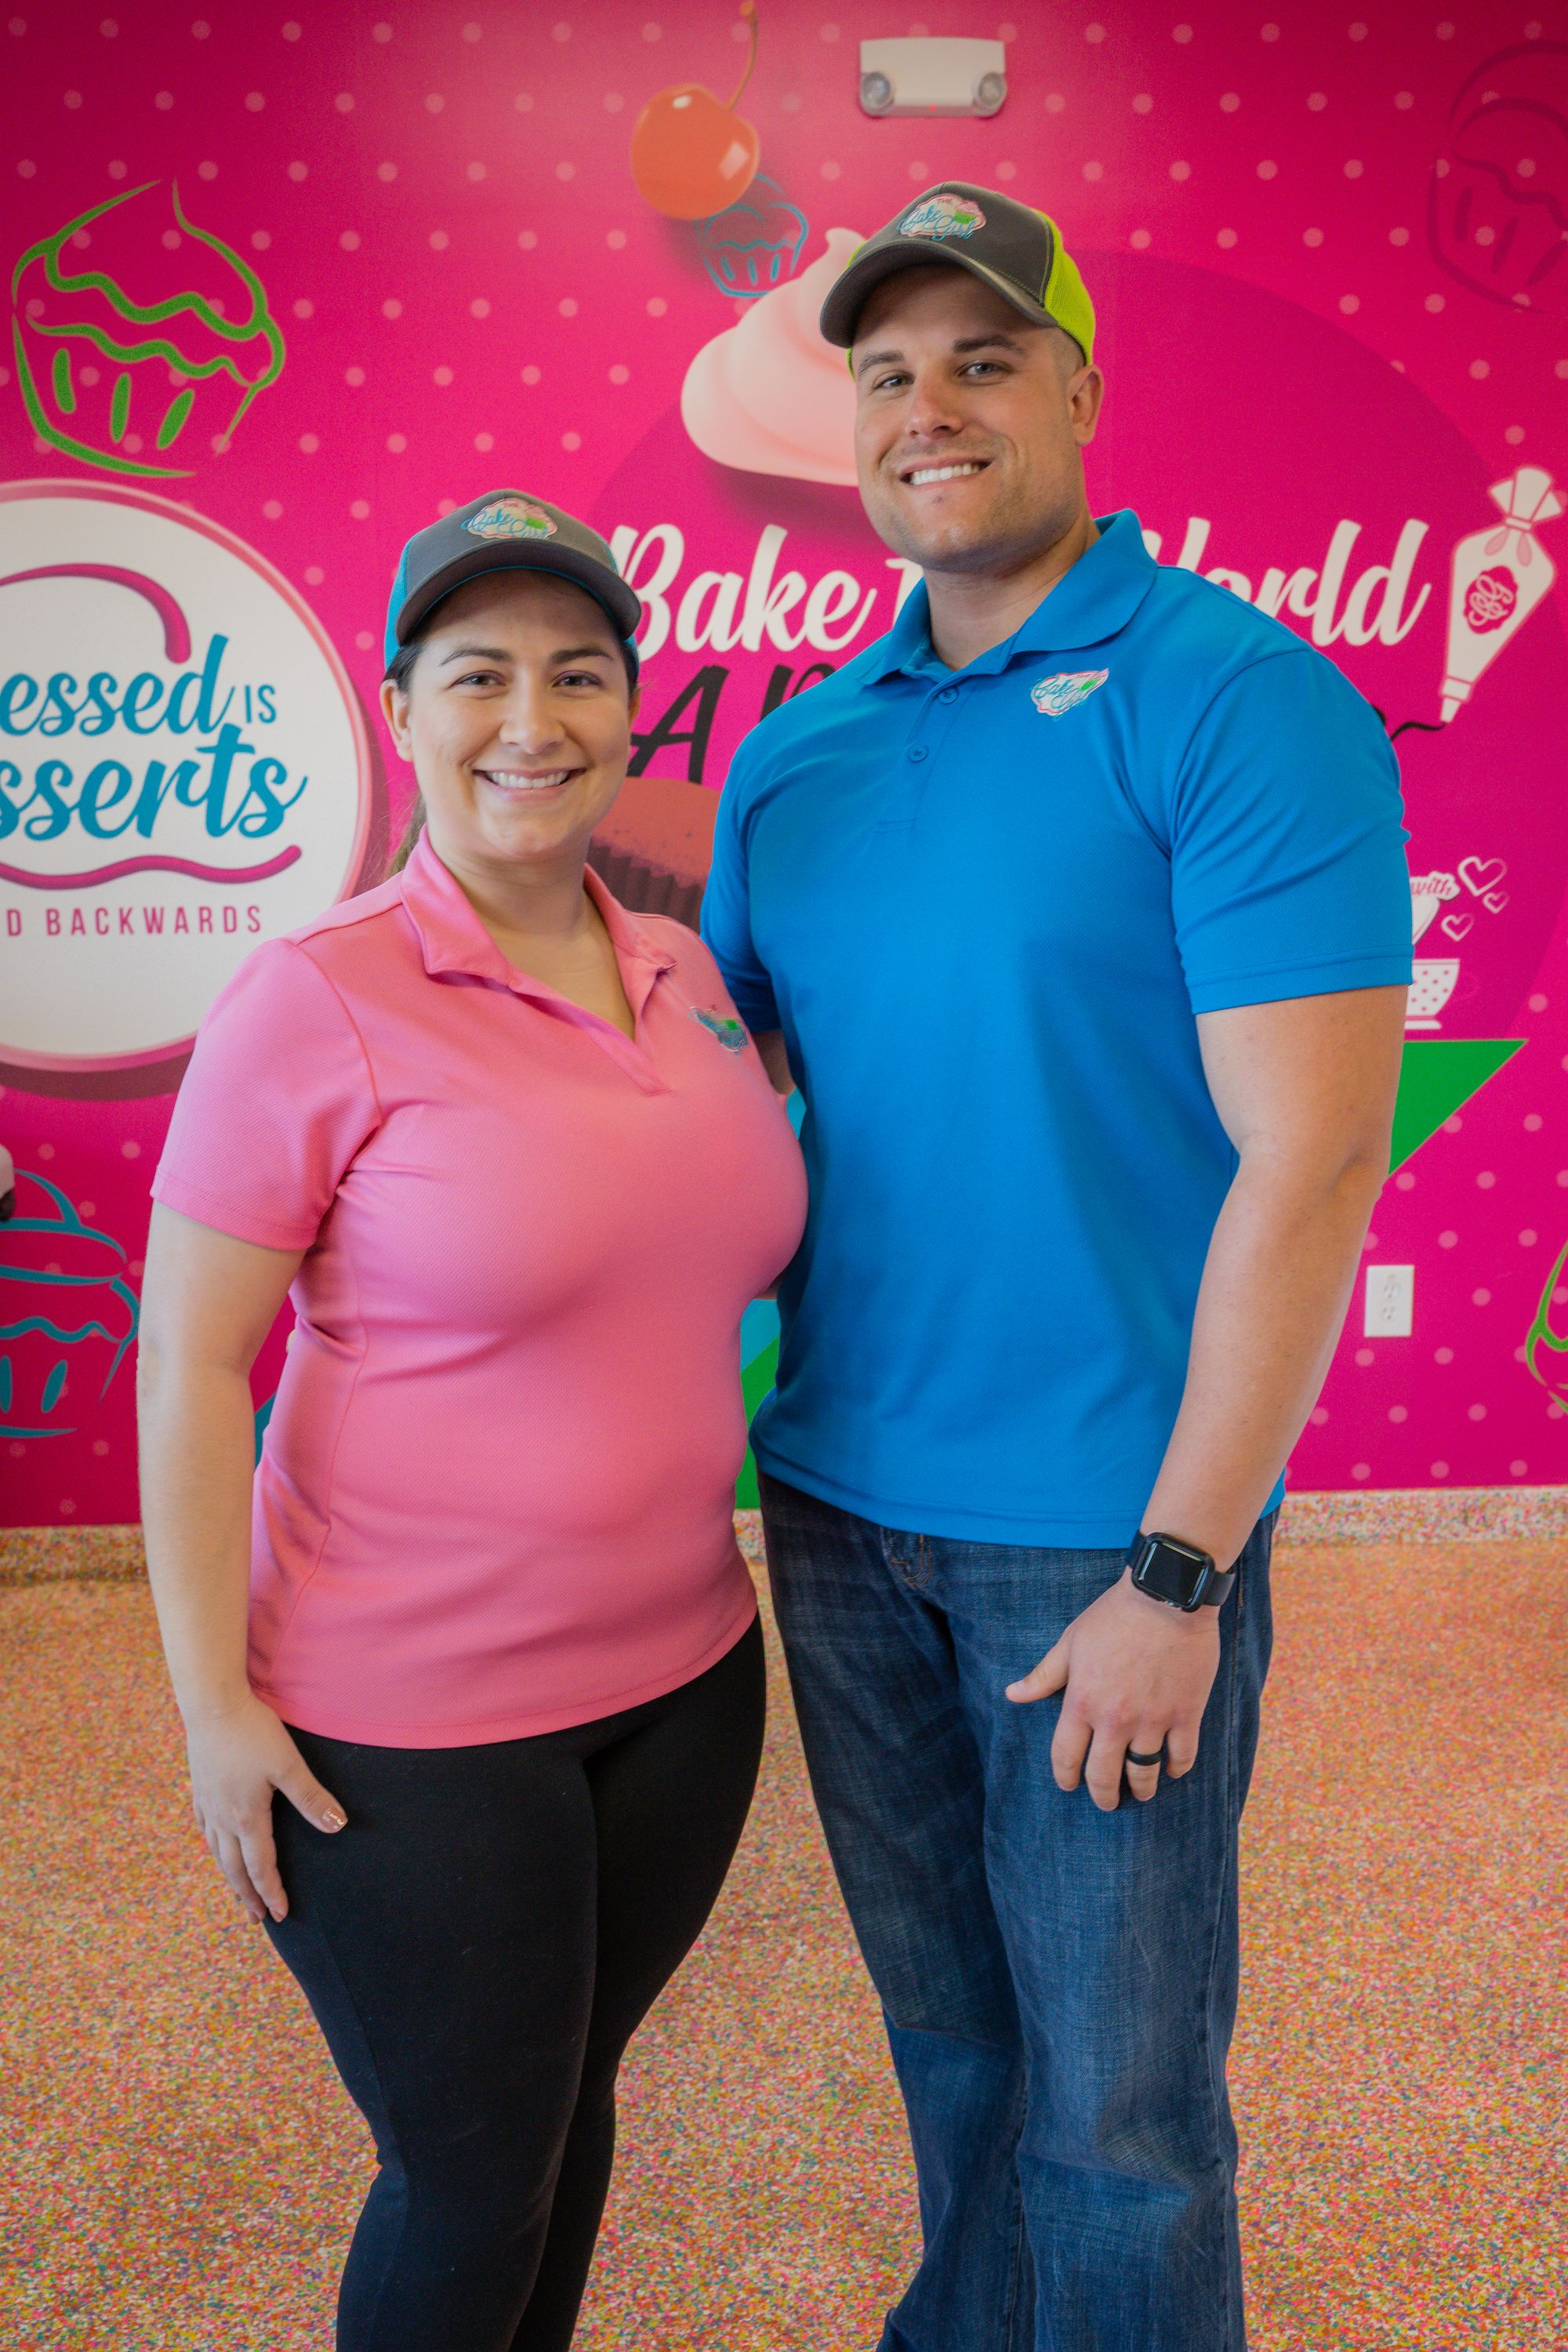 Kirby & Kristina - Founders of The Cake Girl